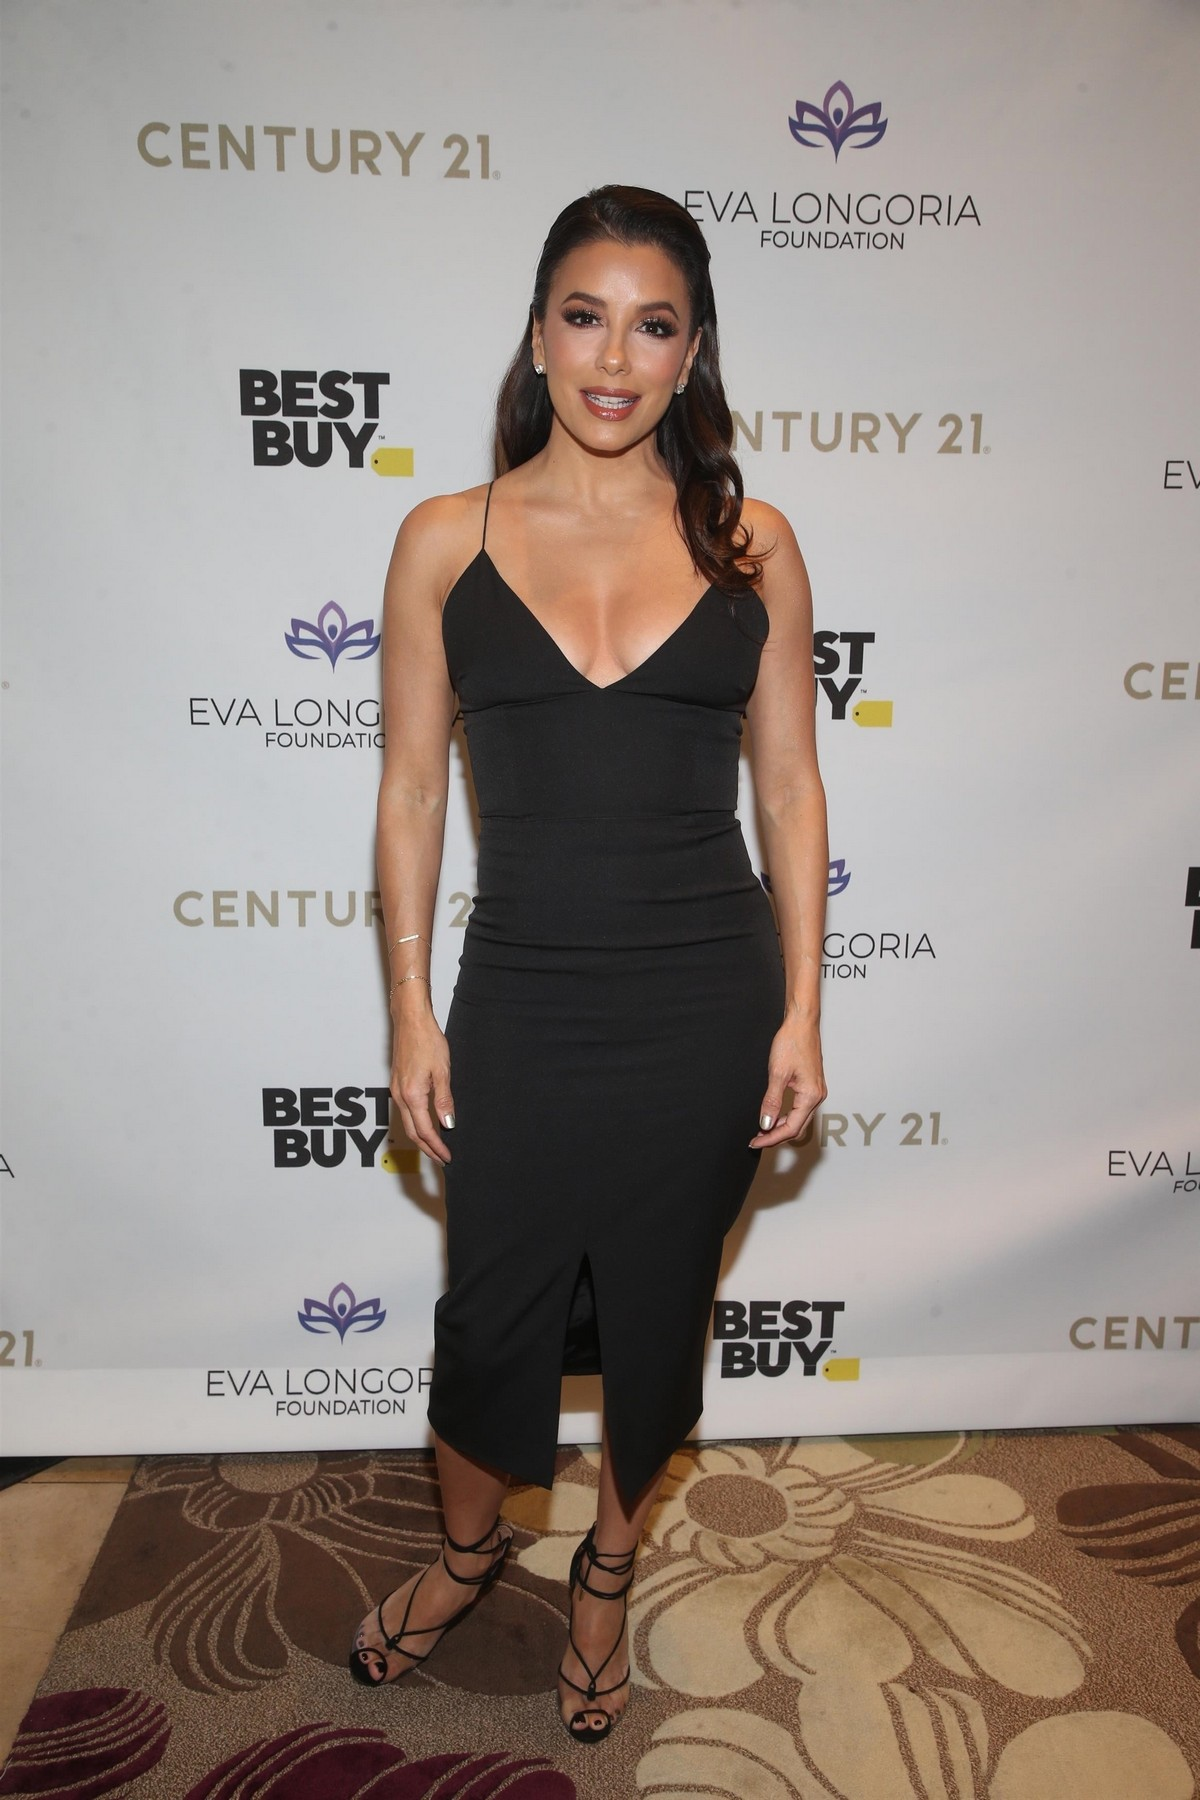 Eva Longoria attends The Eva Longoria Foundation Gala at the Four Seasons in Los Angeles 2019/11/15 8